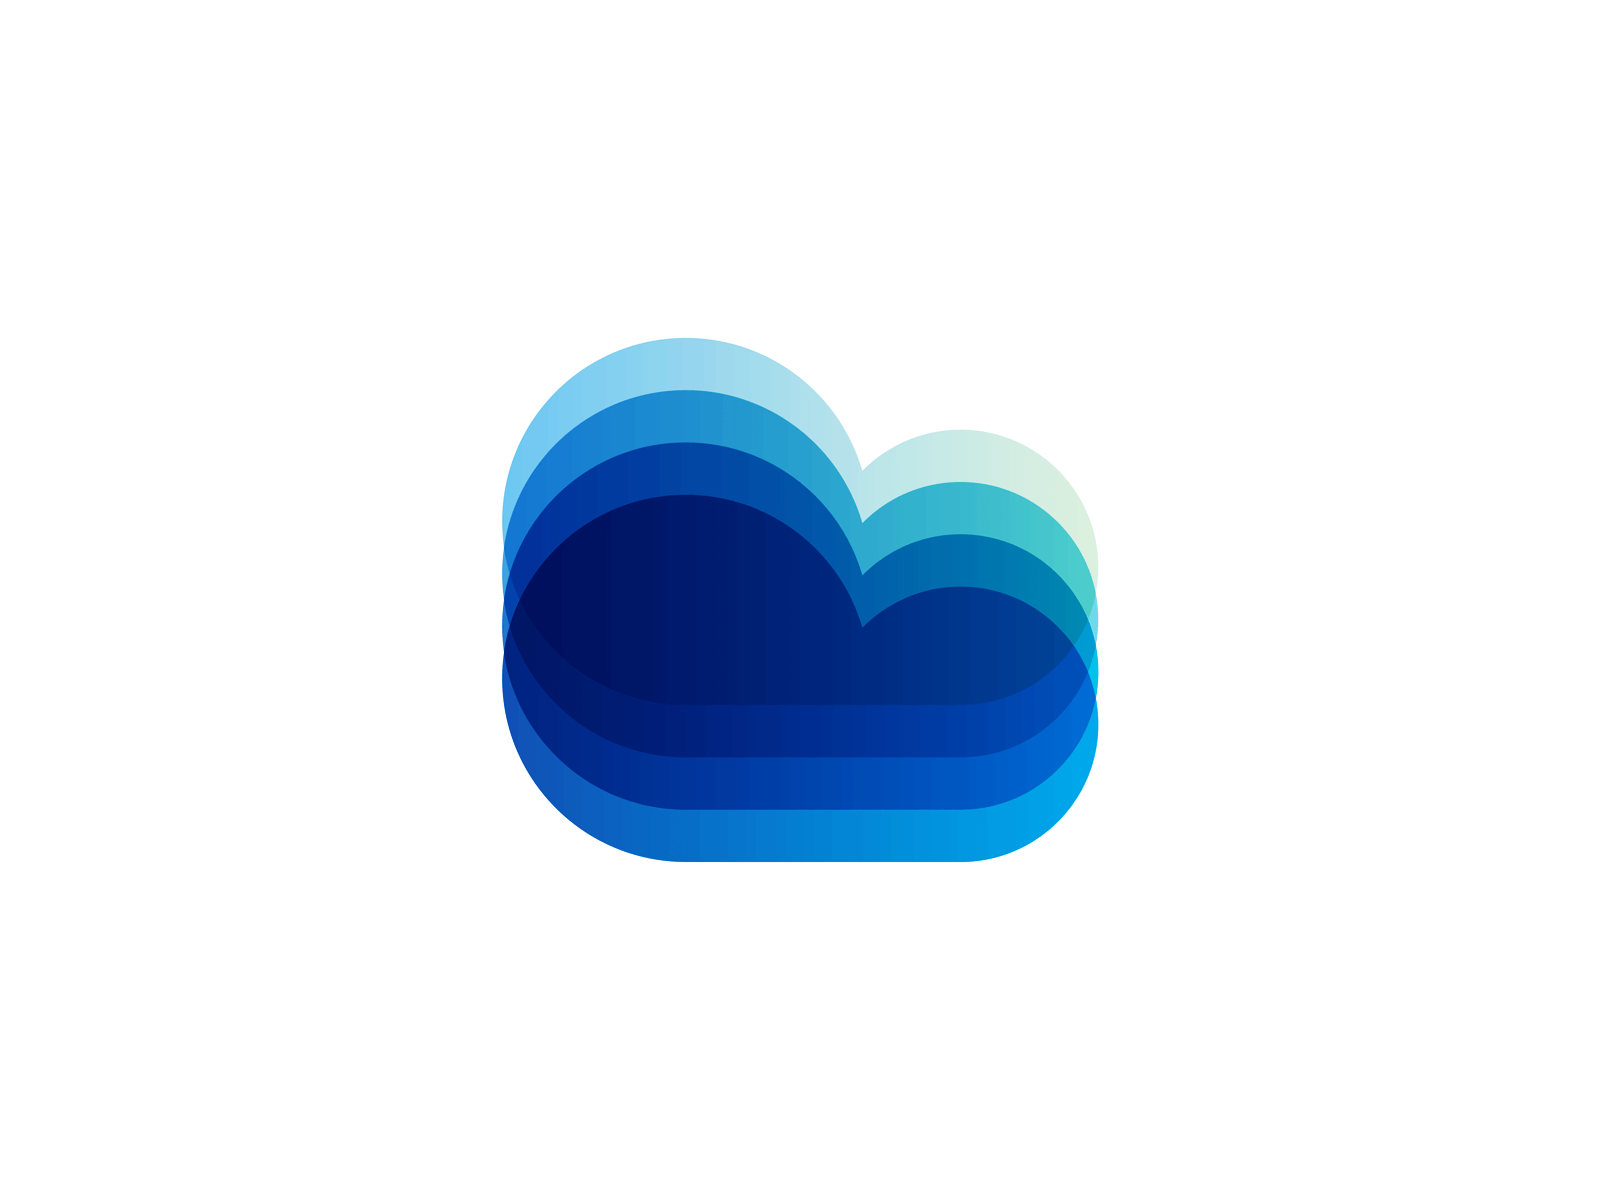 Cloud Digital Ecosystem Logo Design By Alex Tass 4x Png